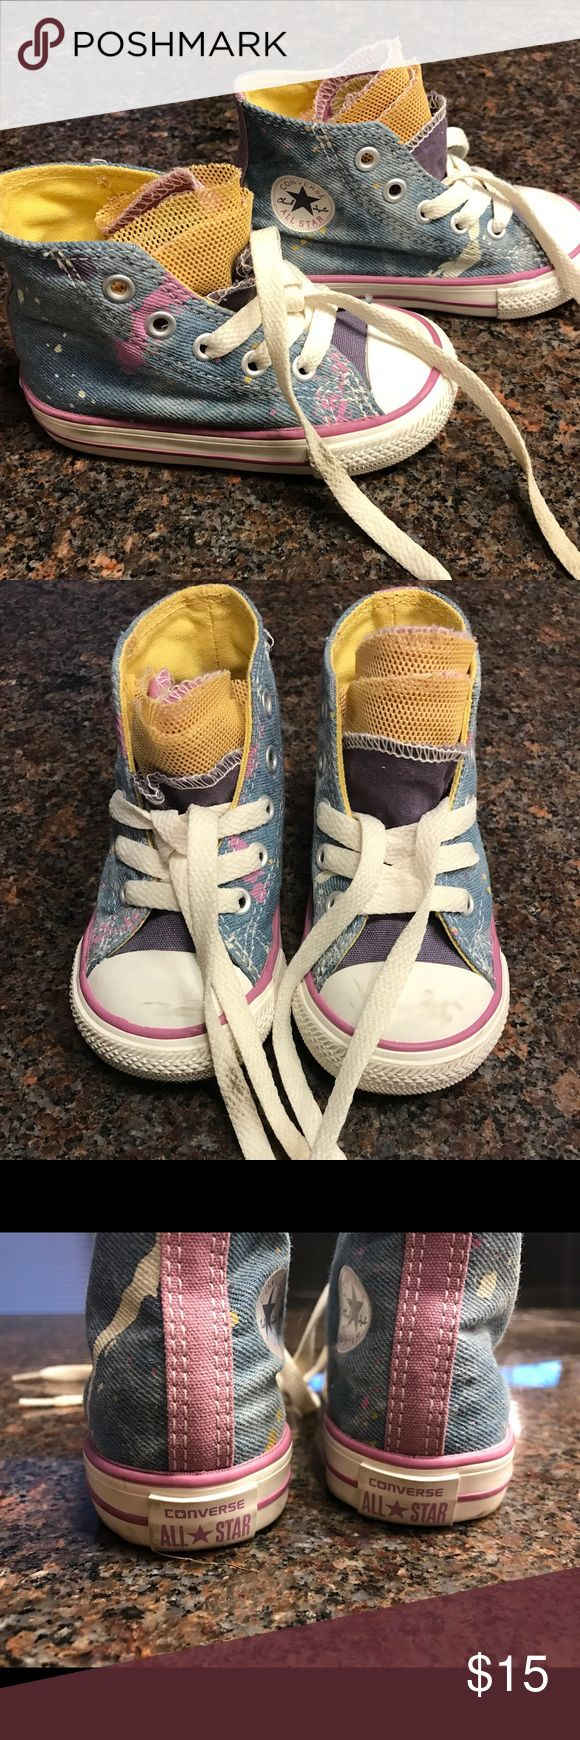 Toddler Girl's Size 5 Converse High Tops Barely worn size 5, Toddler Girl Converse High Tops.  These stylish sneakers look best with the tongues fluffed out to show their colorful yellow/purple/pink layers! Converse Shoes Sneakers